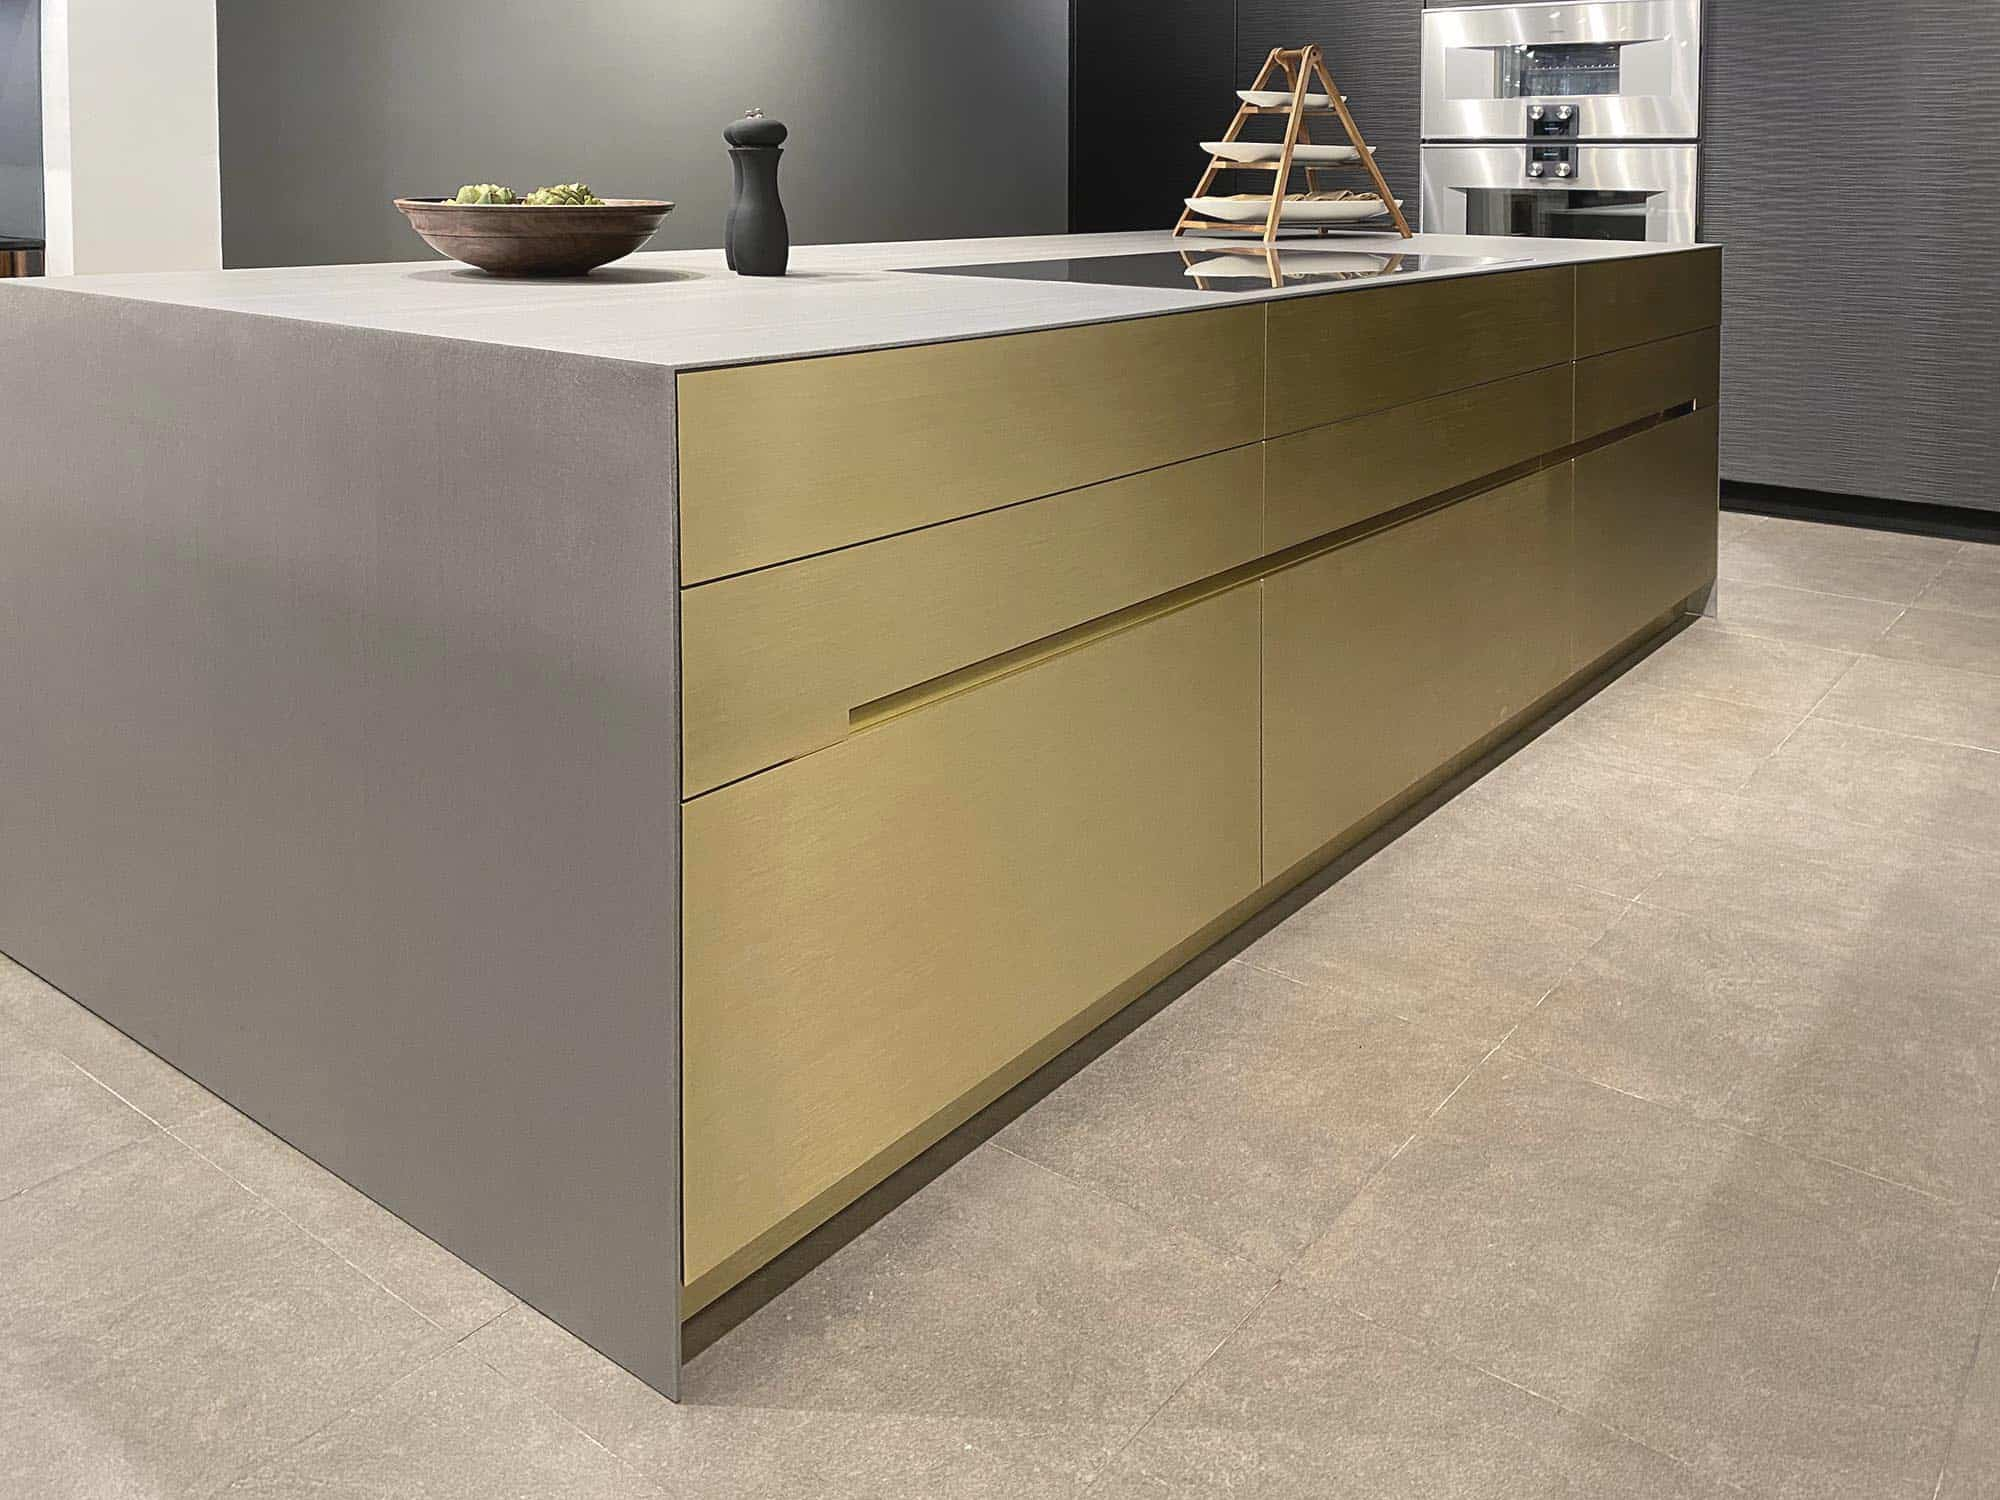 handlefree kitchen island in silvertouh hot rolled steed in a new kitchen display in the eggersman NYC showroom